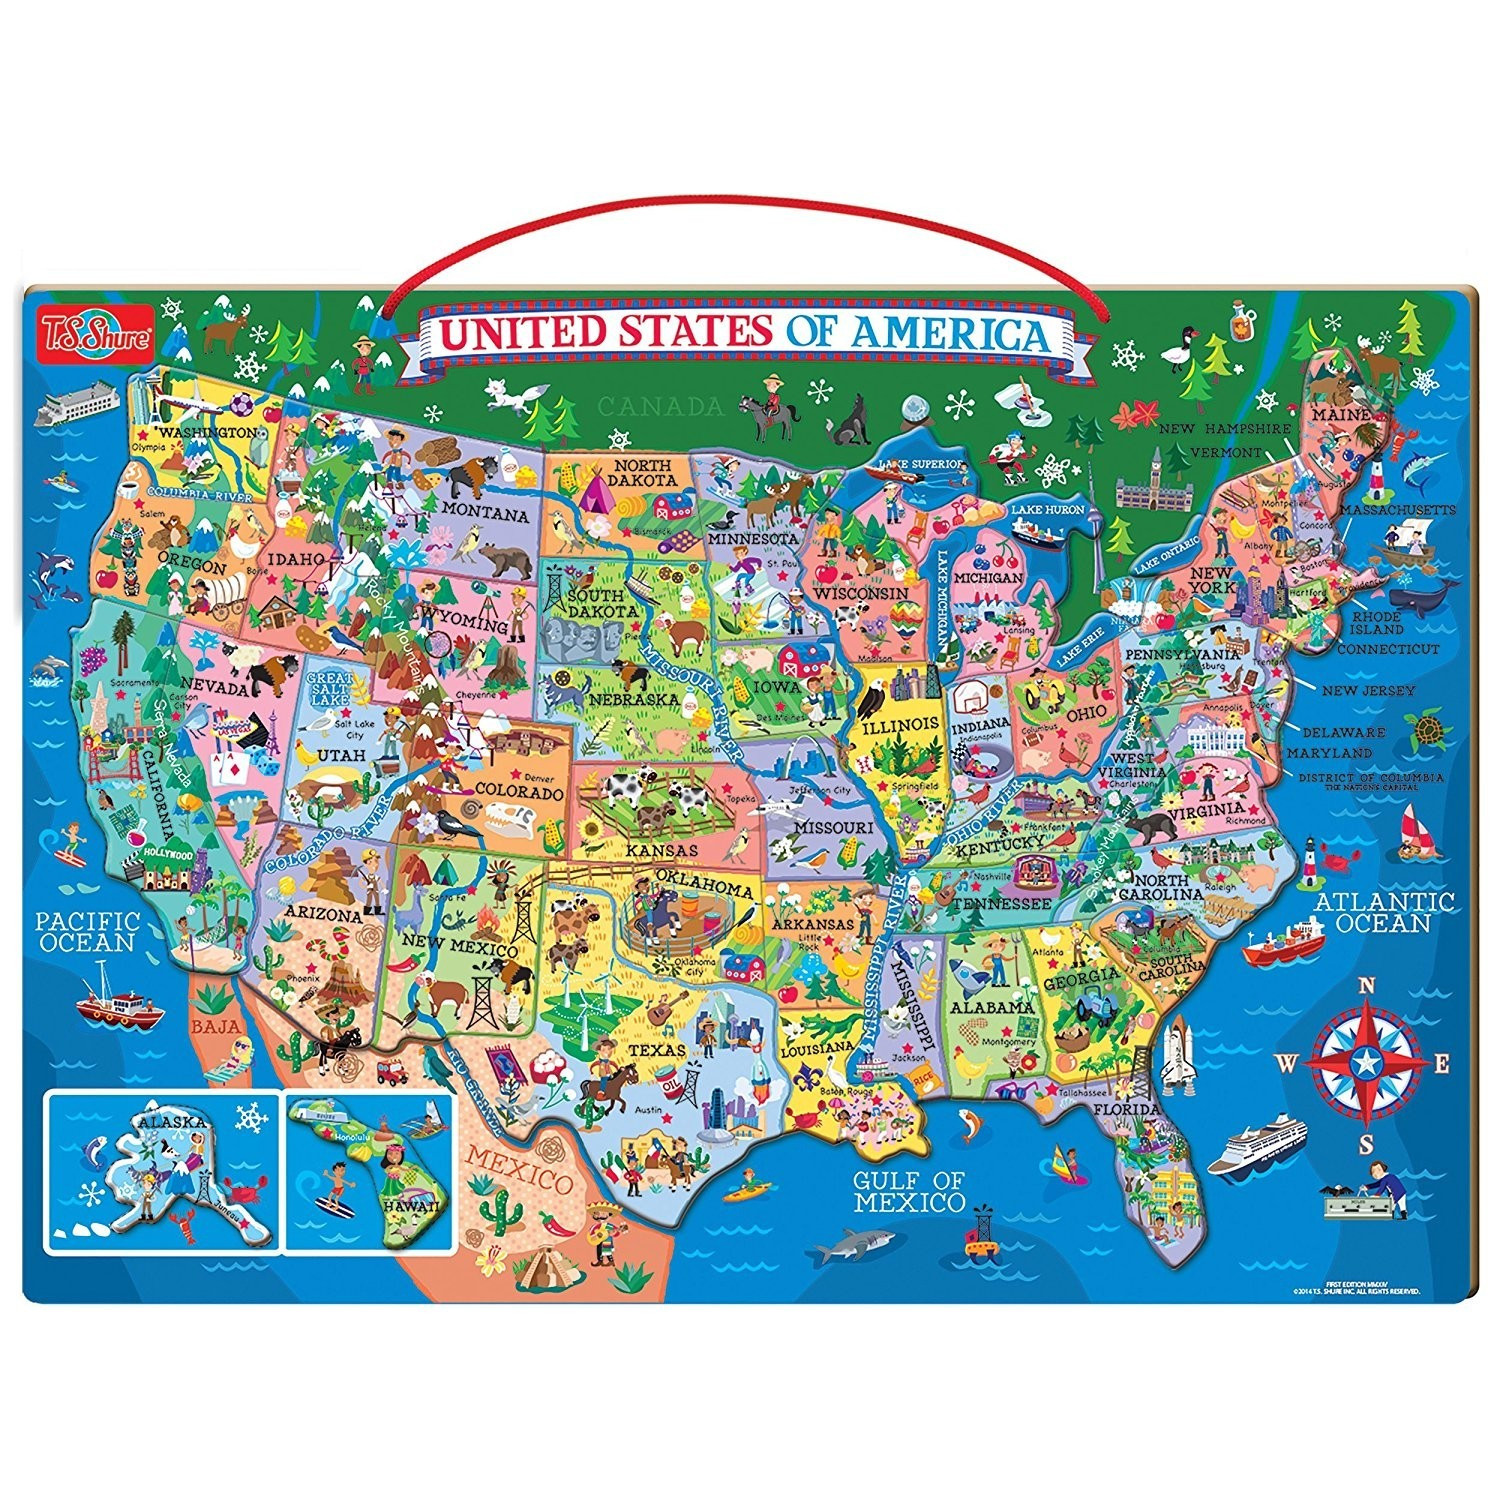 Puzzle Maps The United States Inspirationa Wooden Usa Puzzle